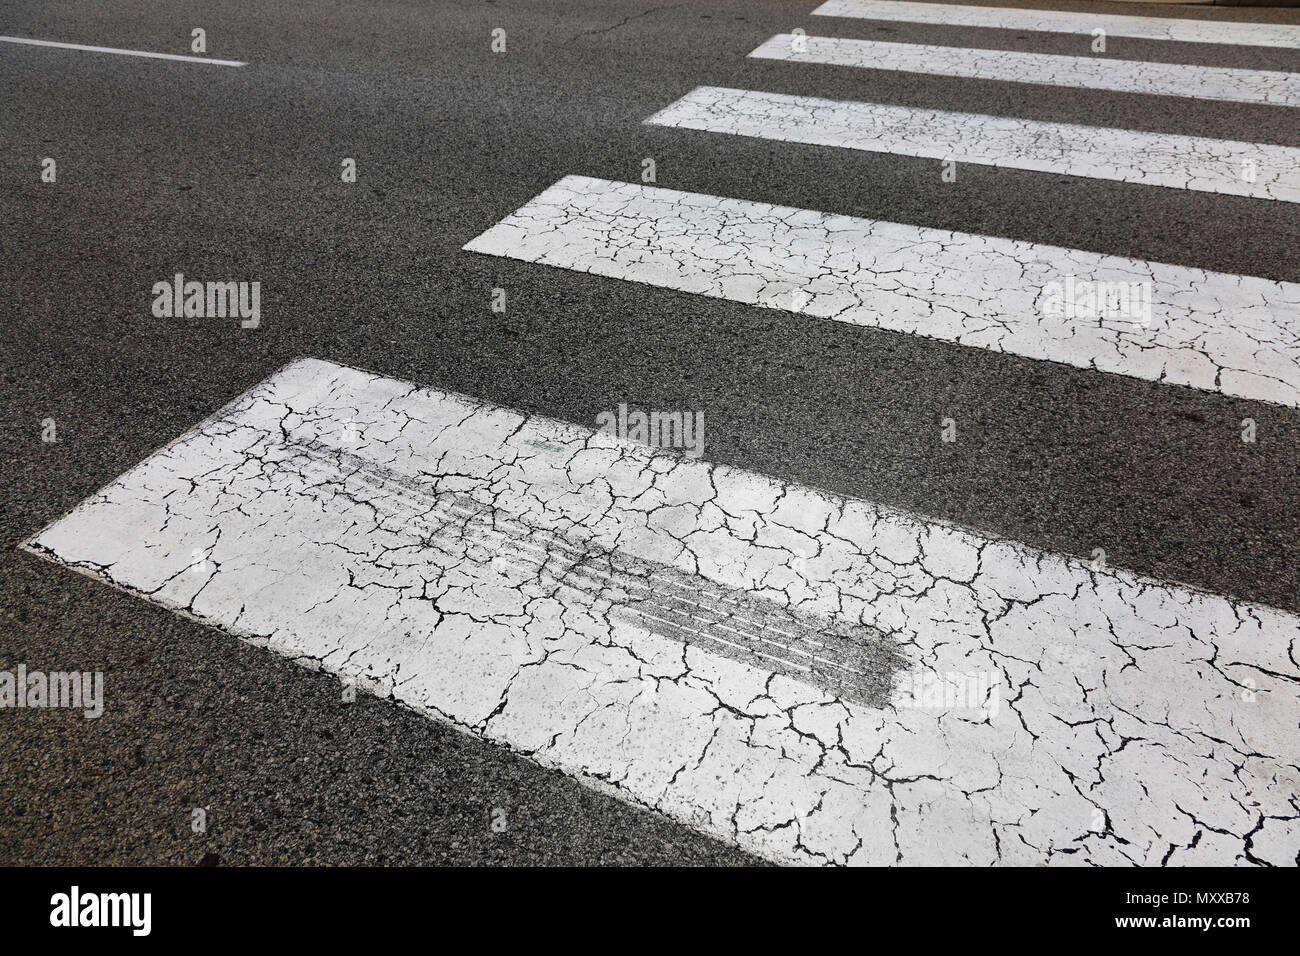 A skid mark on a zebra crossing, road safety concept. Stock Photo